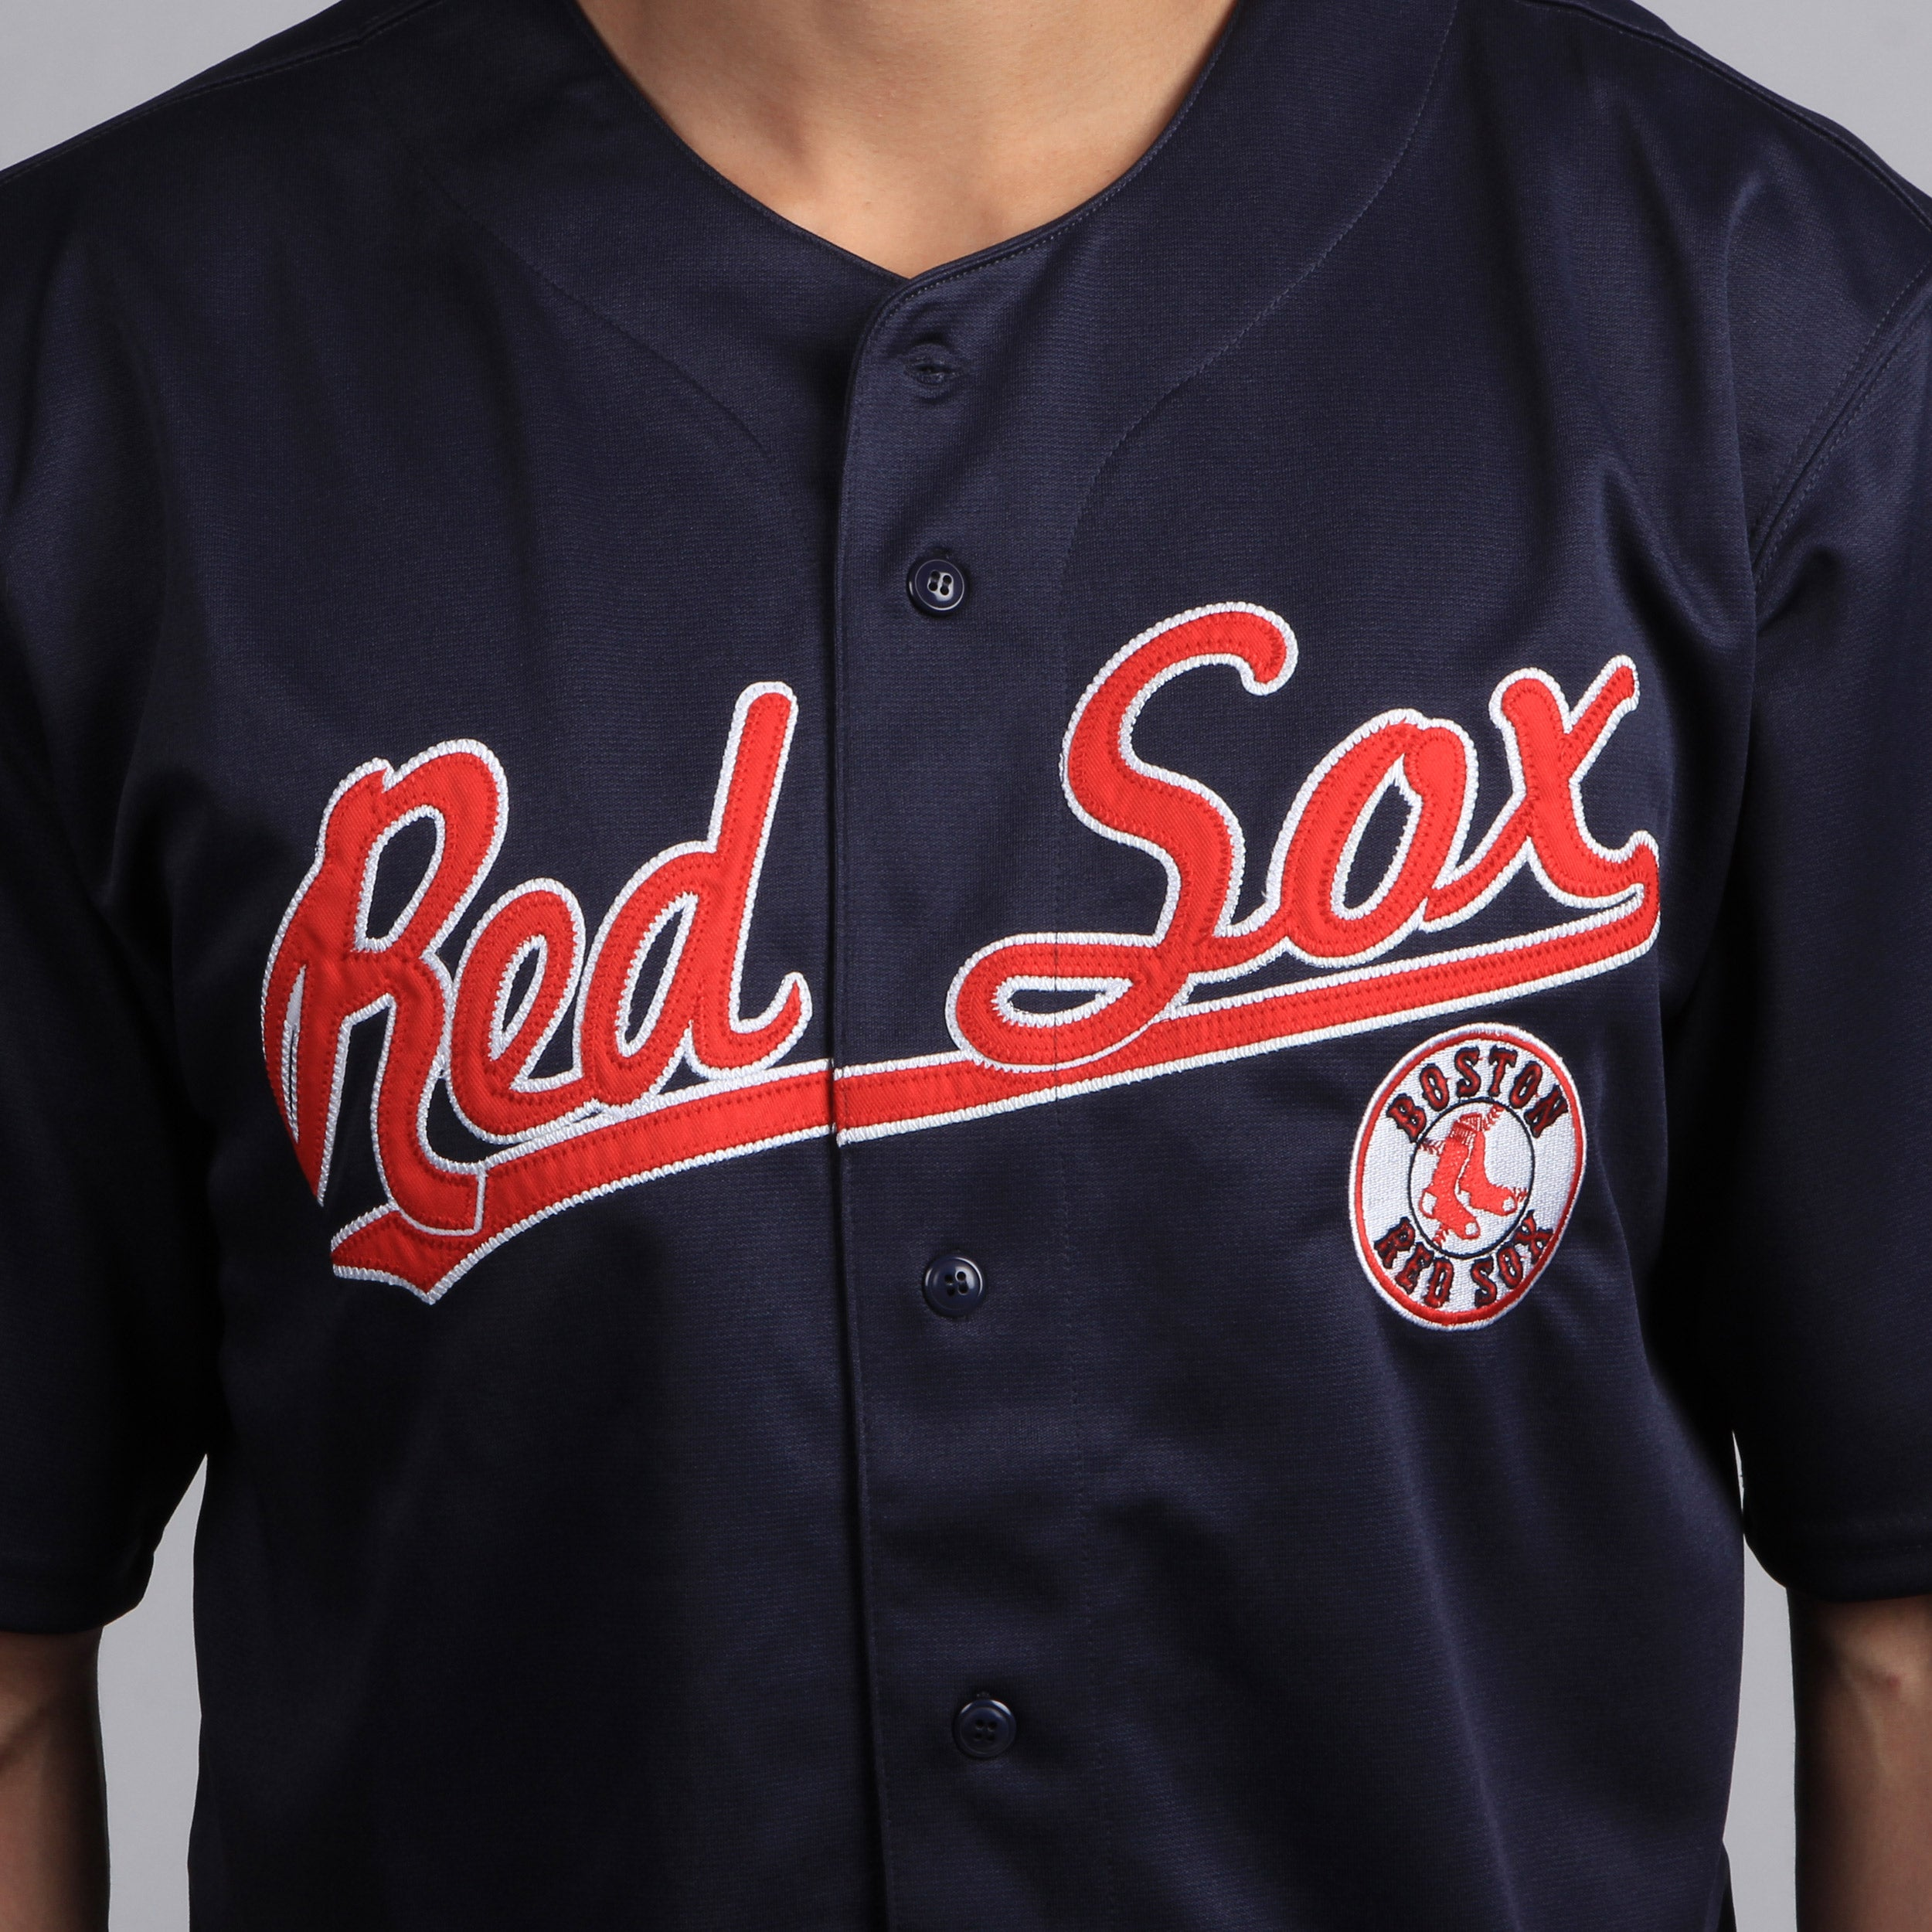 48ec39977 Shop Dynasty Men s MLB Boston Red Sox Jersey - Free Shipping On Orders Over   45 - Overstock - 7859993